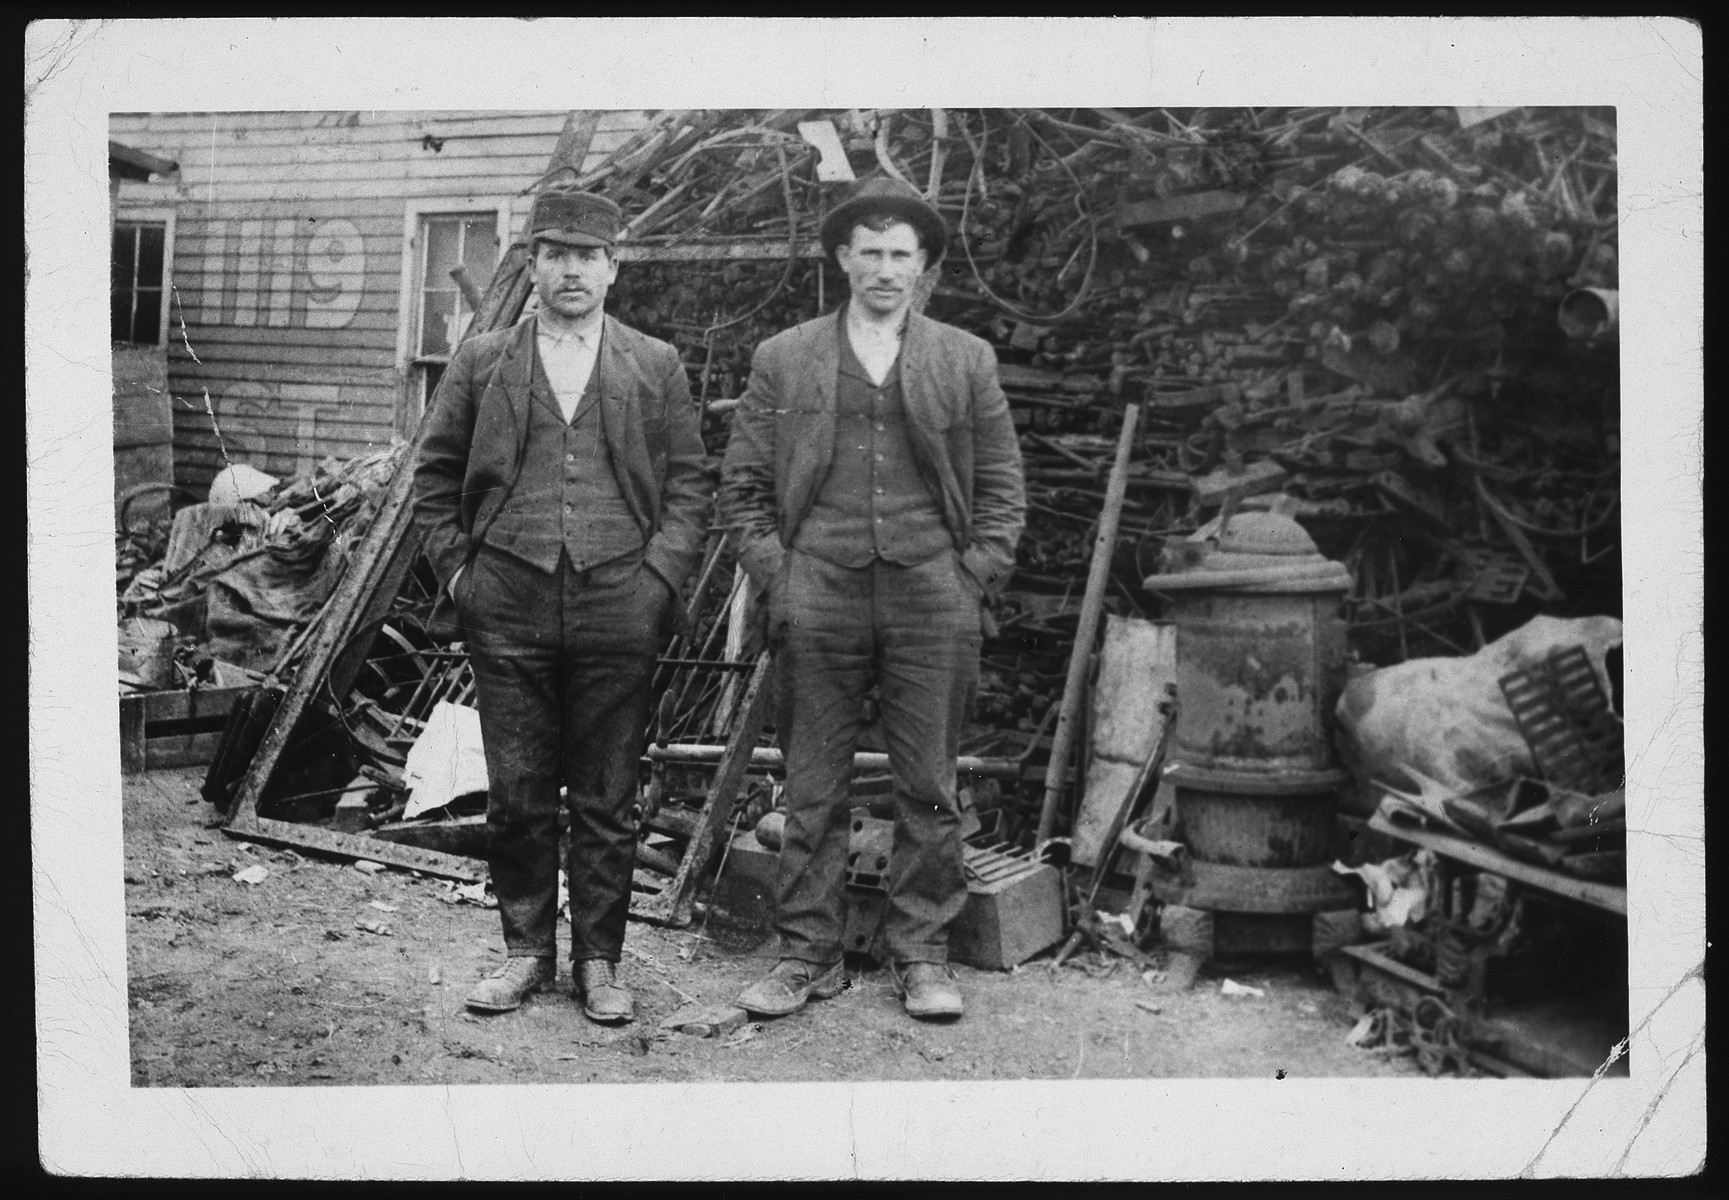 Morris (right) and Yitzhak Asner stand in front of a pile of scrap metal.